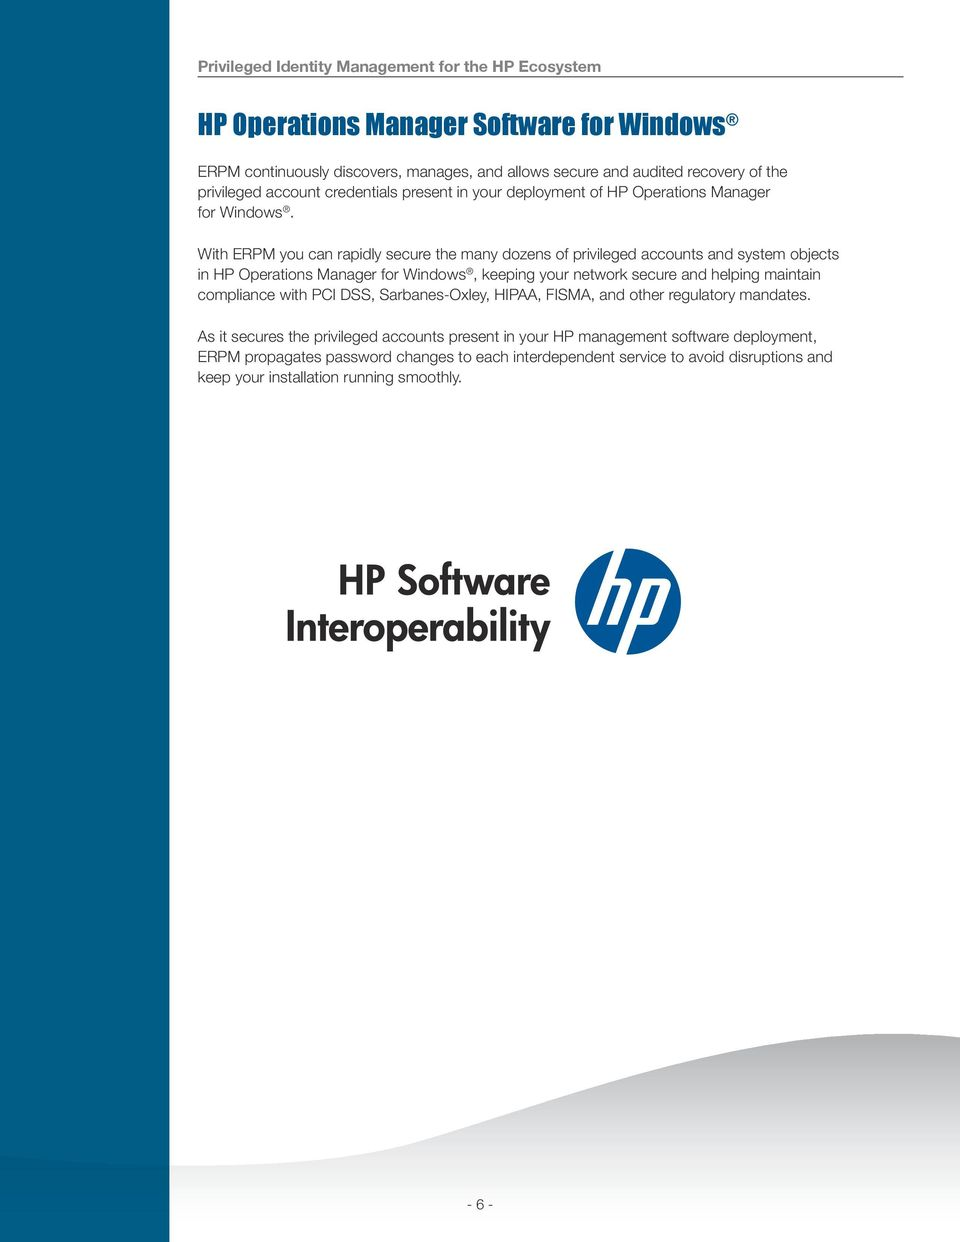 With ERPM you can rapidly secure the many dozens of privileged accounts and system objects in HP Operations Manager for Windows, keeping your network secure and helping maintain